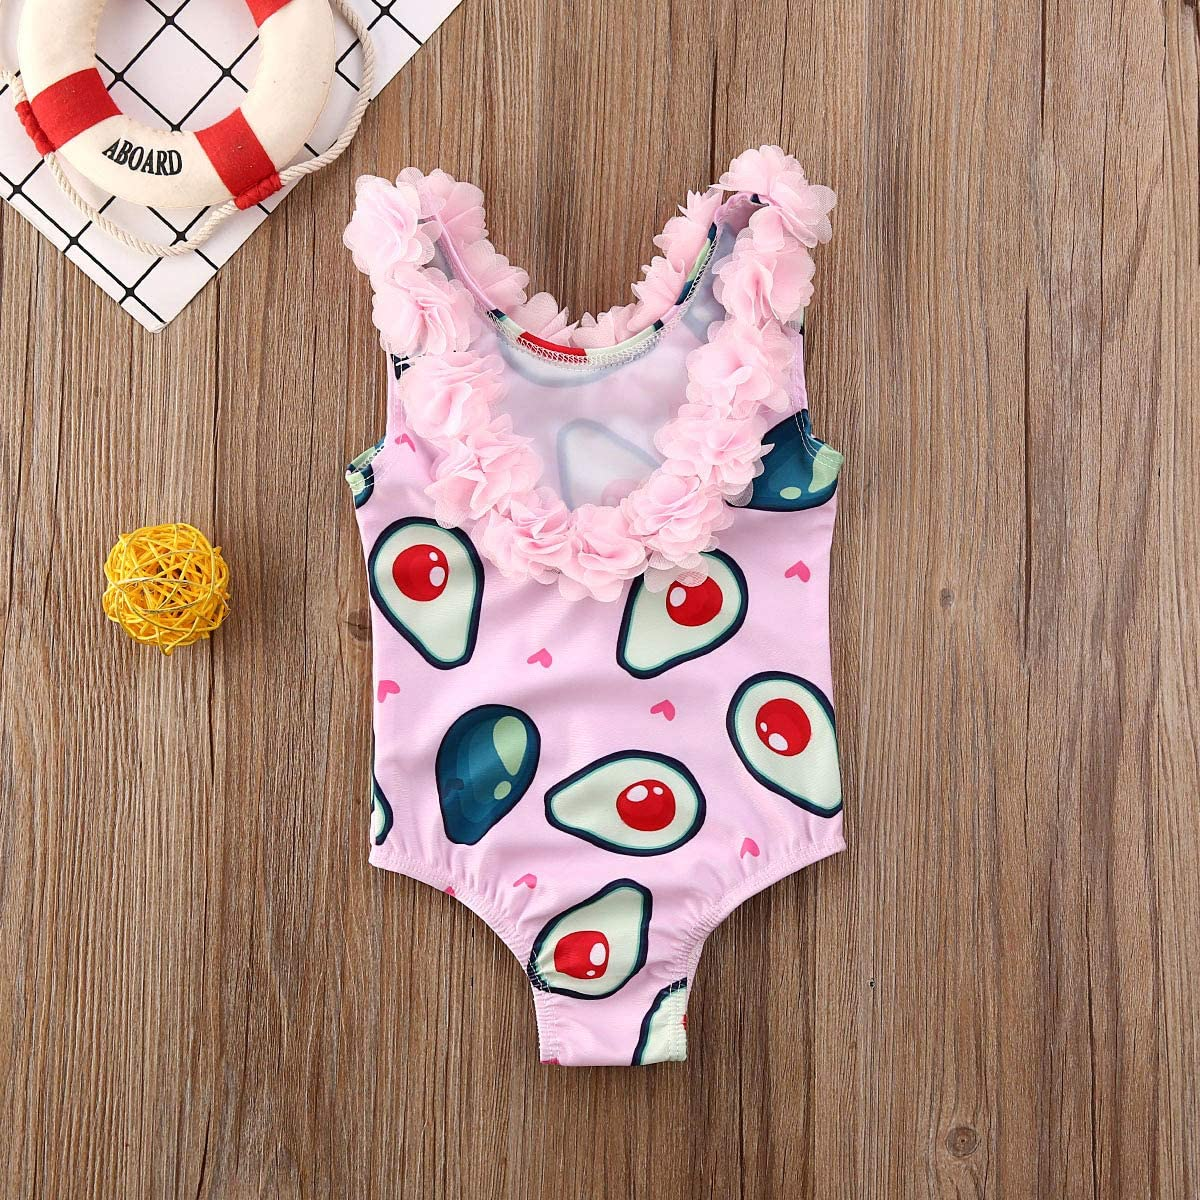 Cotby Toddlers Bathing Suit Princess Flounce Bikini Beach Sport 1 Piece Swimsuit for Baby Girls